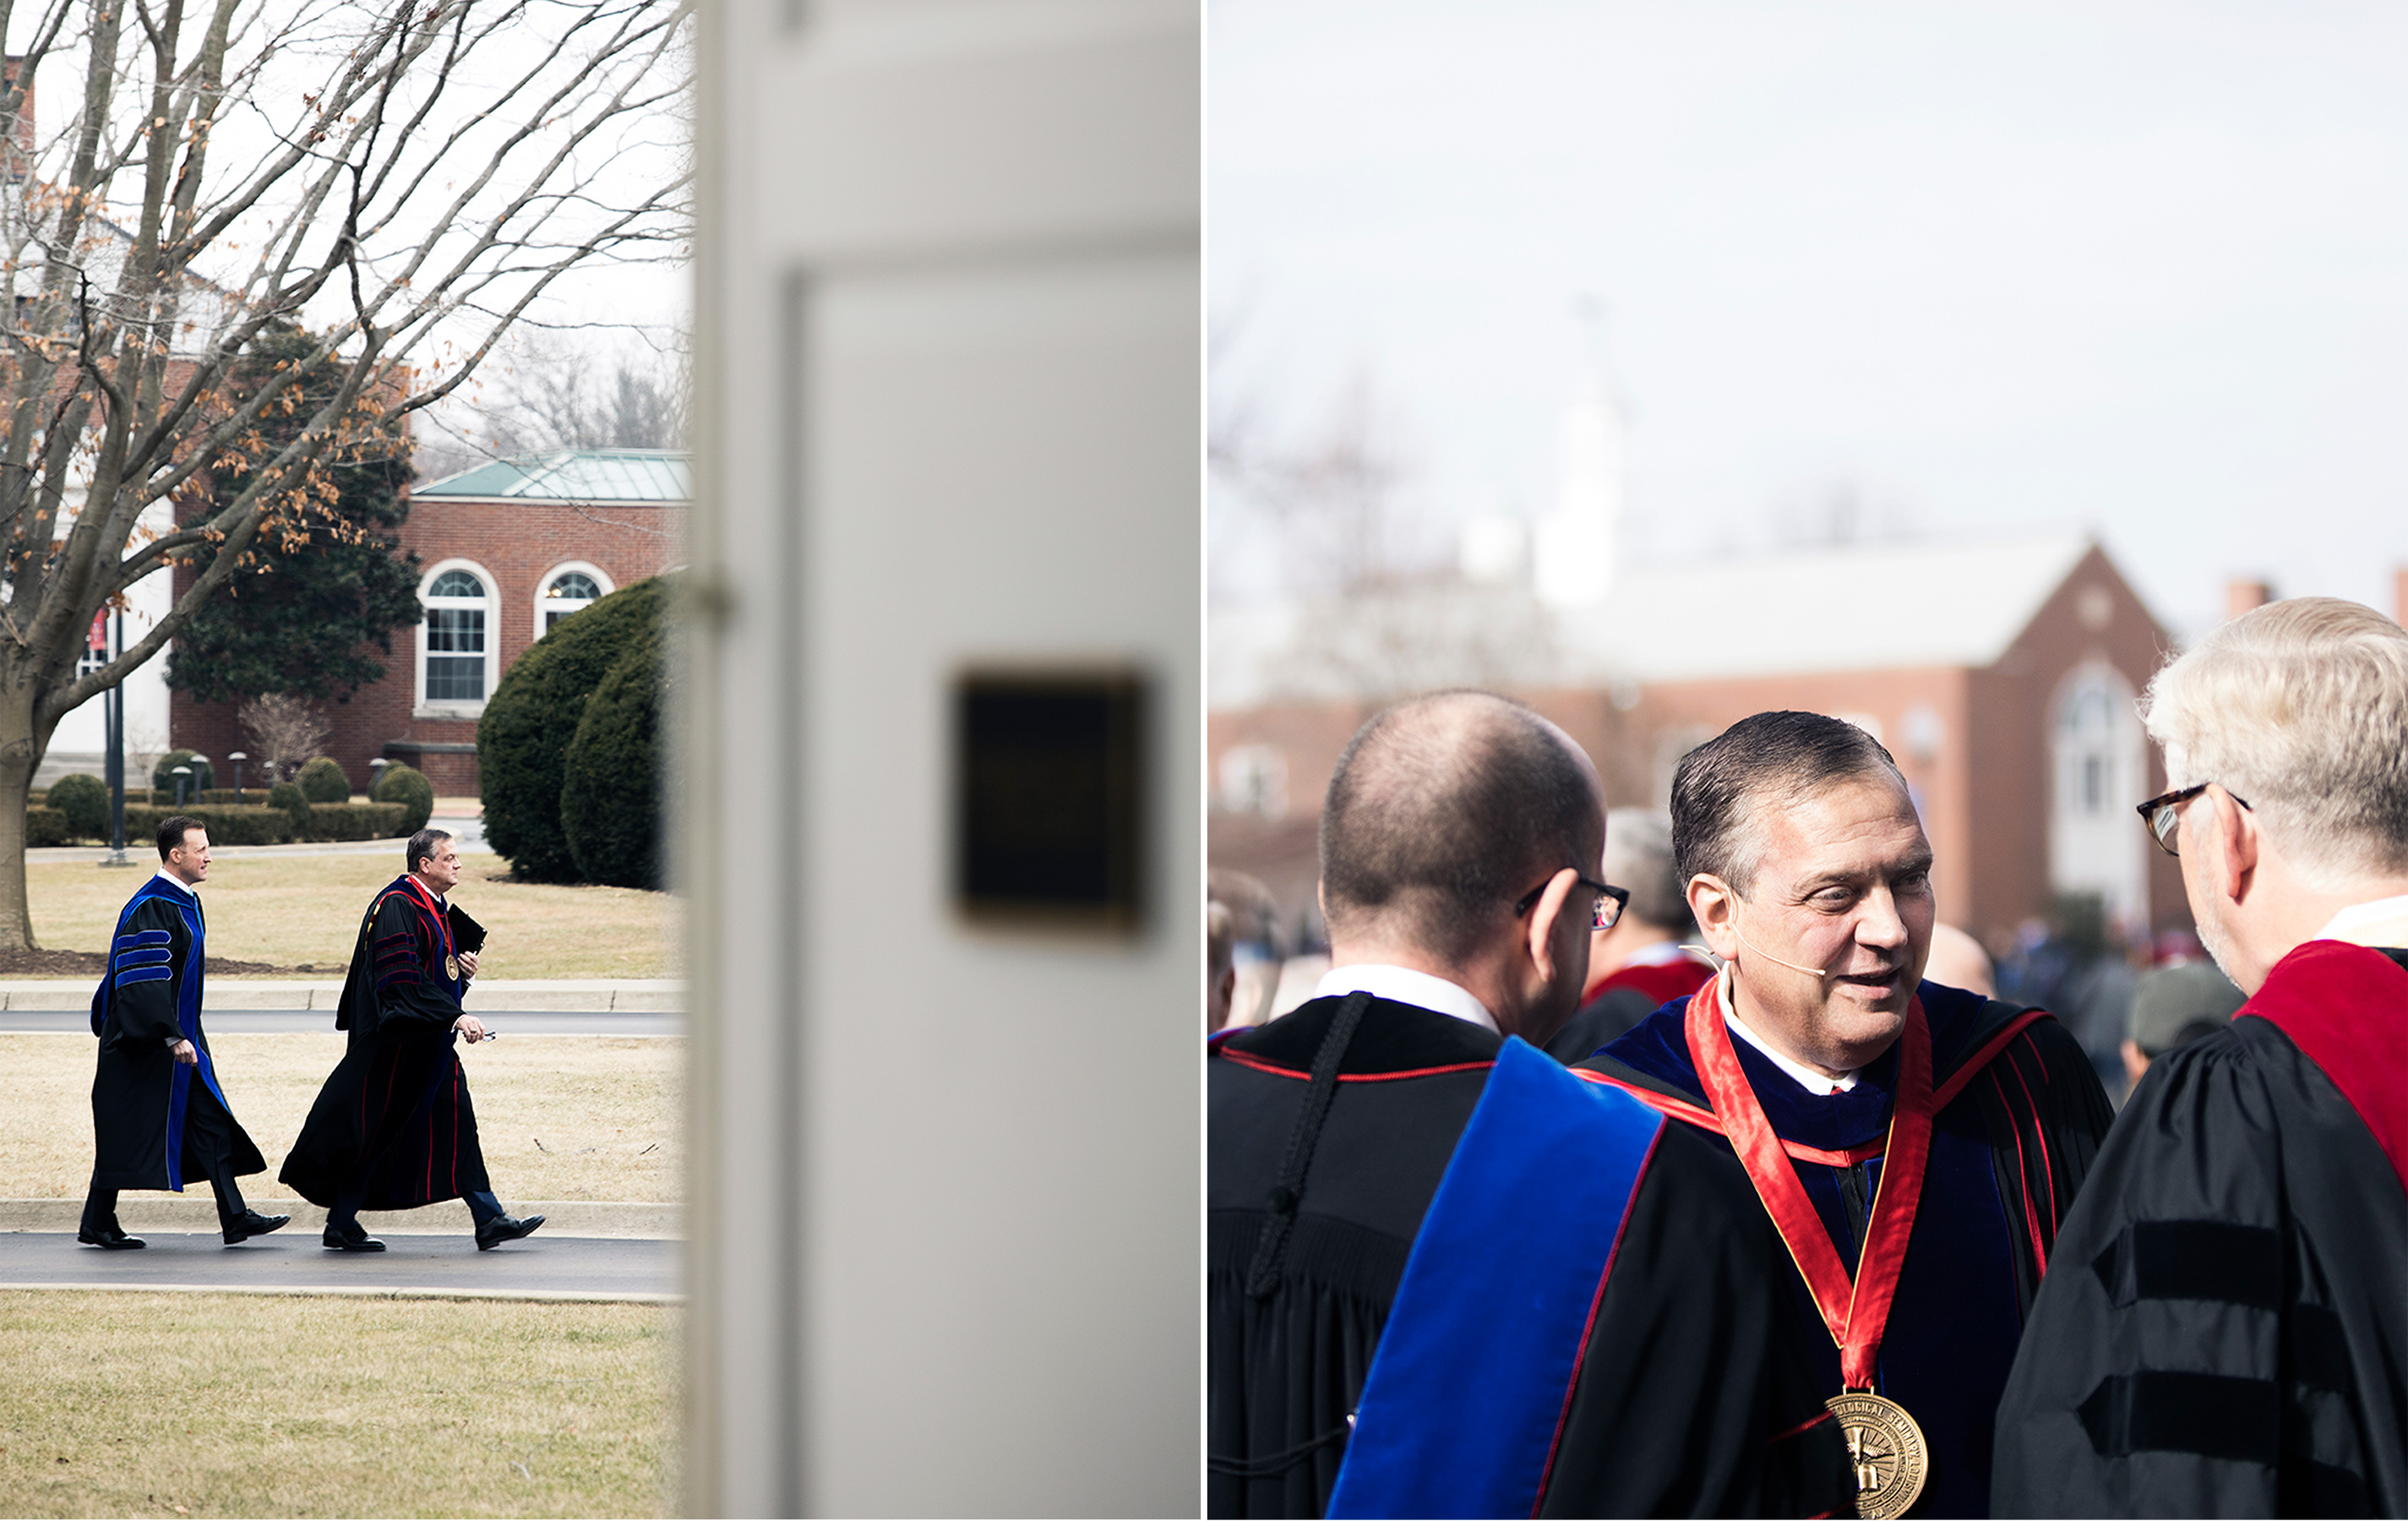 Mohler with deans Hershael W. York and Adam W. Greenway after convocation. & Mohler and Boyce College dean Matthew J. Hall walk to chapel before spring convocation.